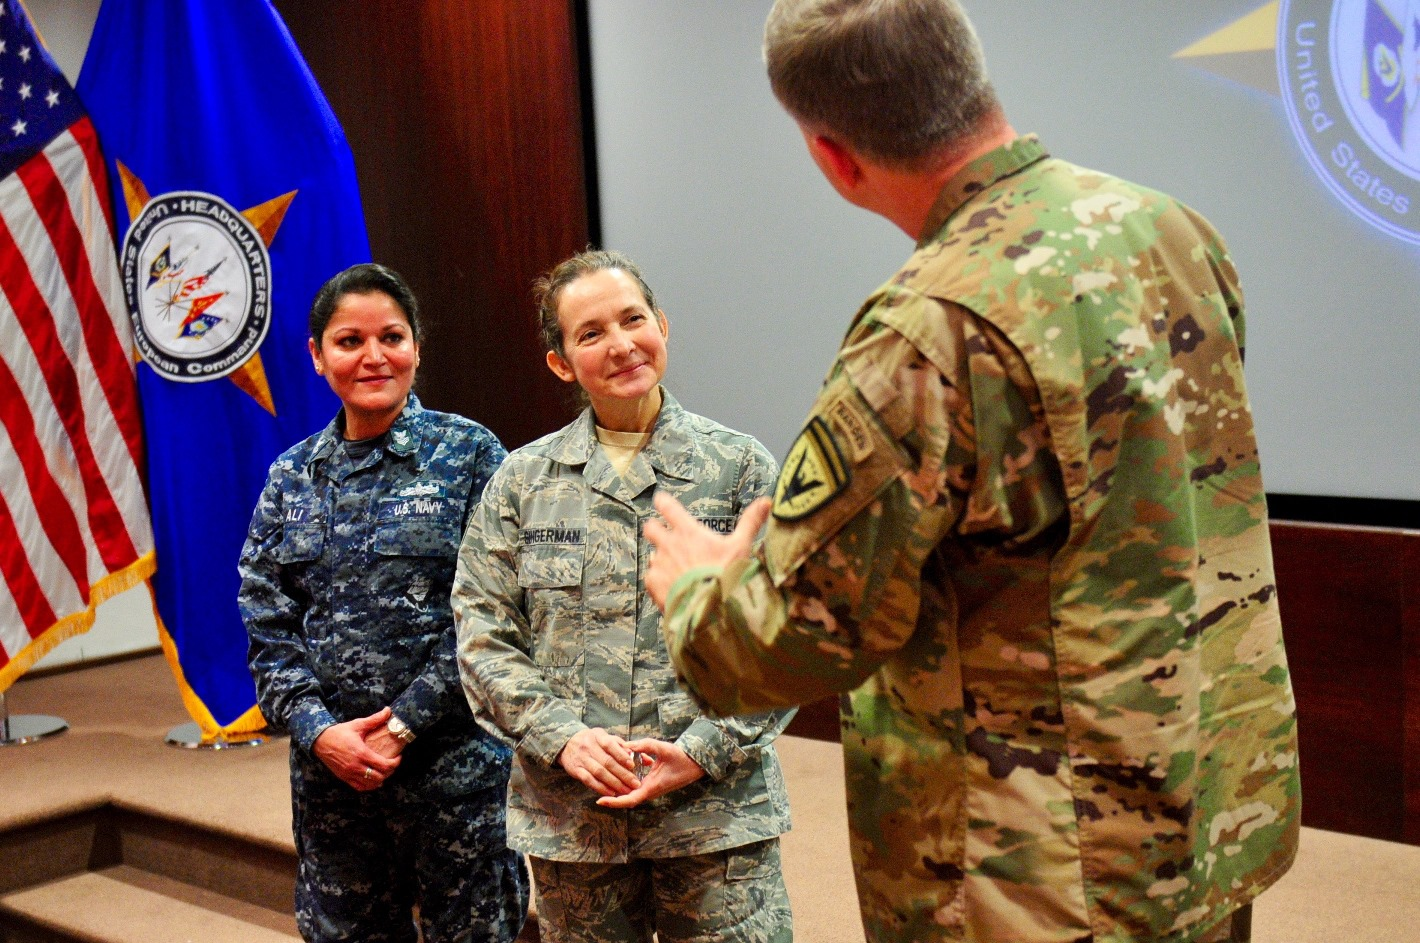 U.S. European Command Deputy Commander Lt. Gen. William Garrett III presents a coin to PO1 Riva Ali, left, and Master Sgt. Alicia Singerman, Secretary of the Joint Staff, for their outstanding duty performance.